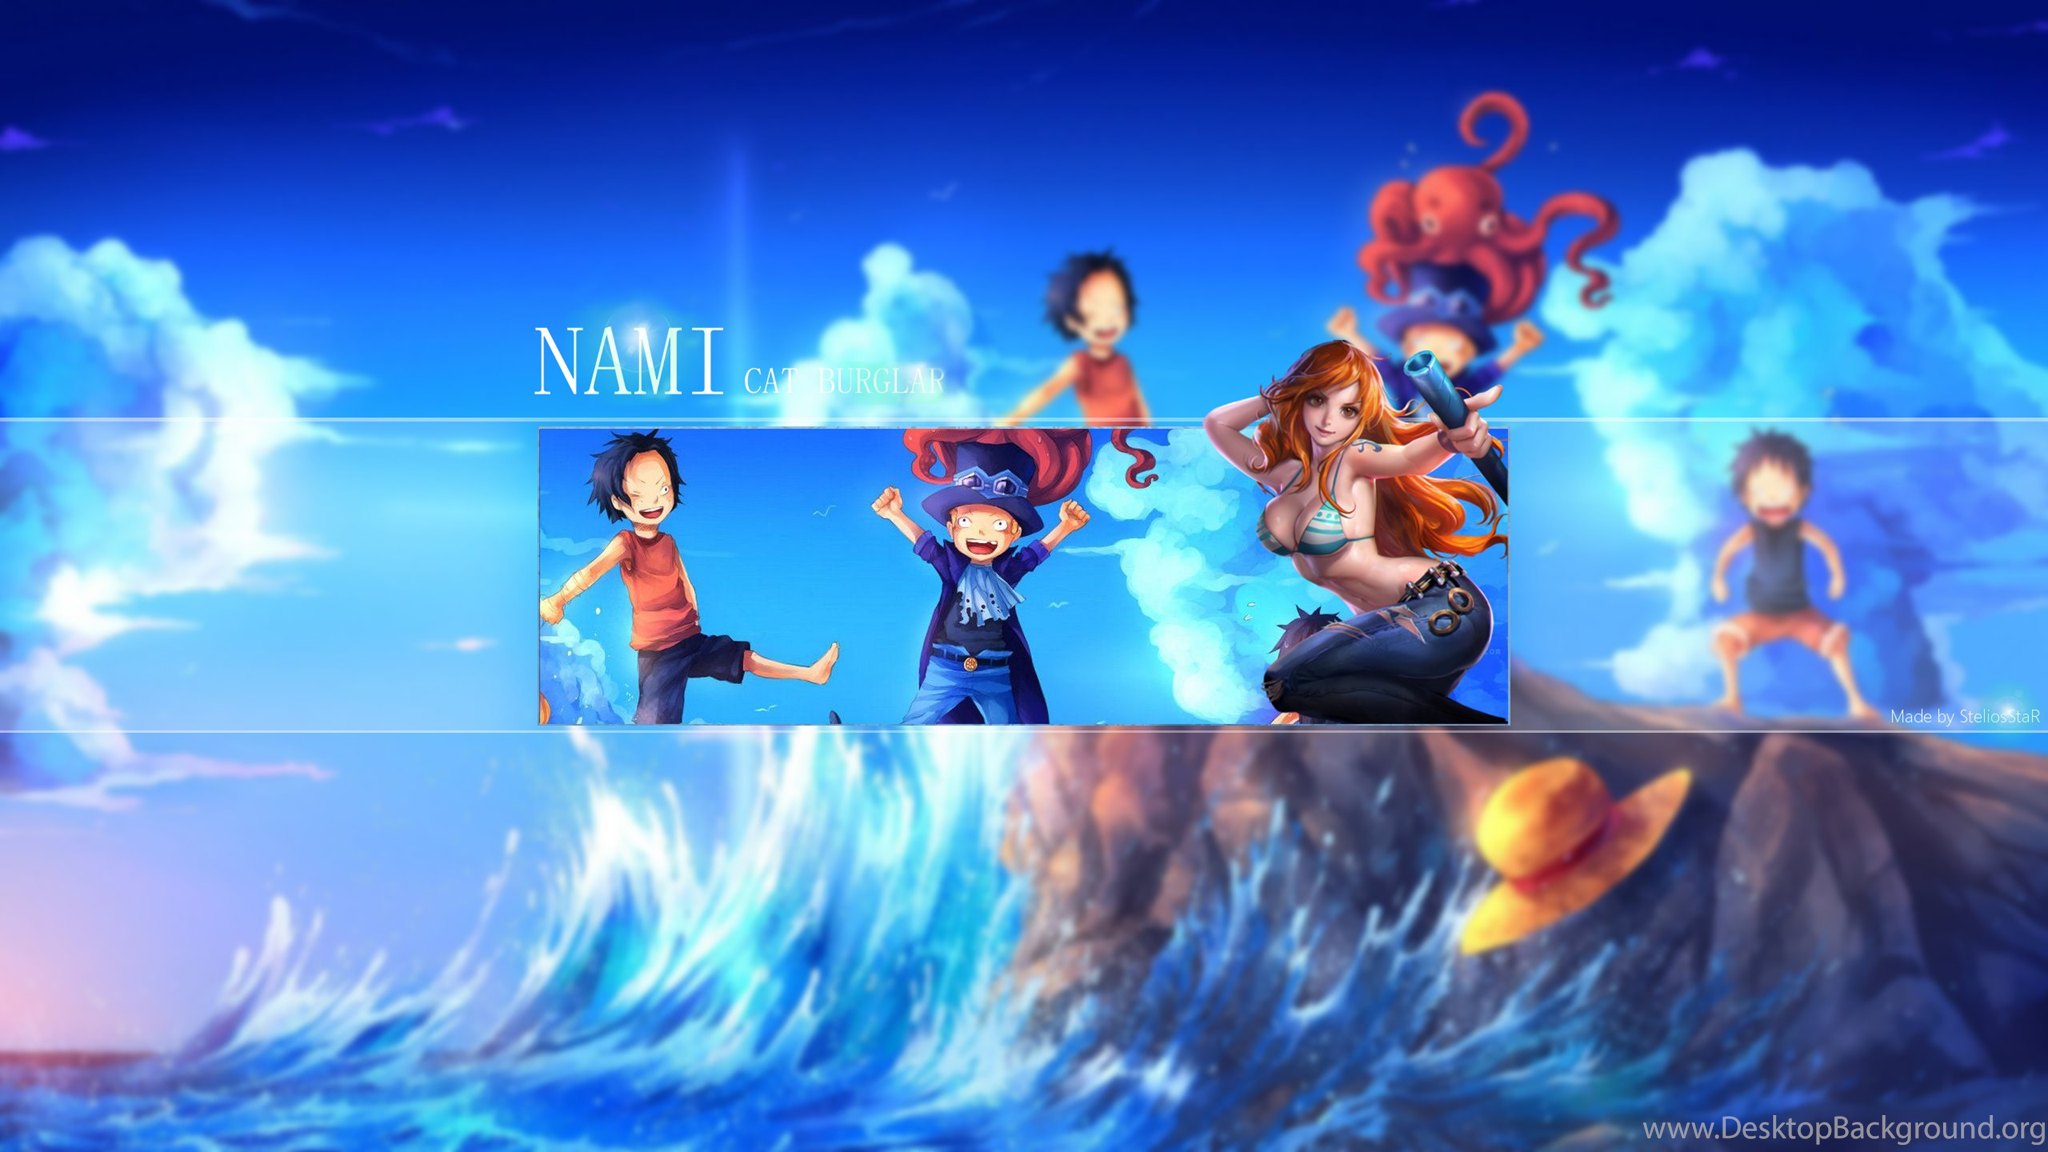 One Piece Nami Wallpapers By Steliosstar On Deviantart Desktop